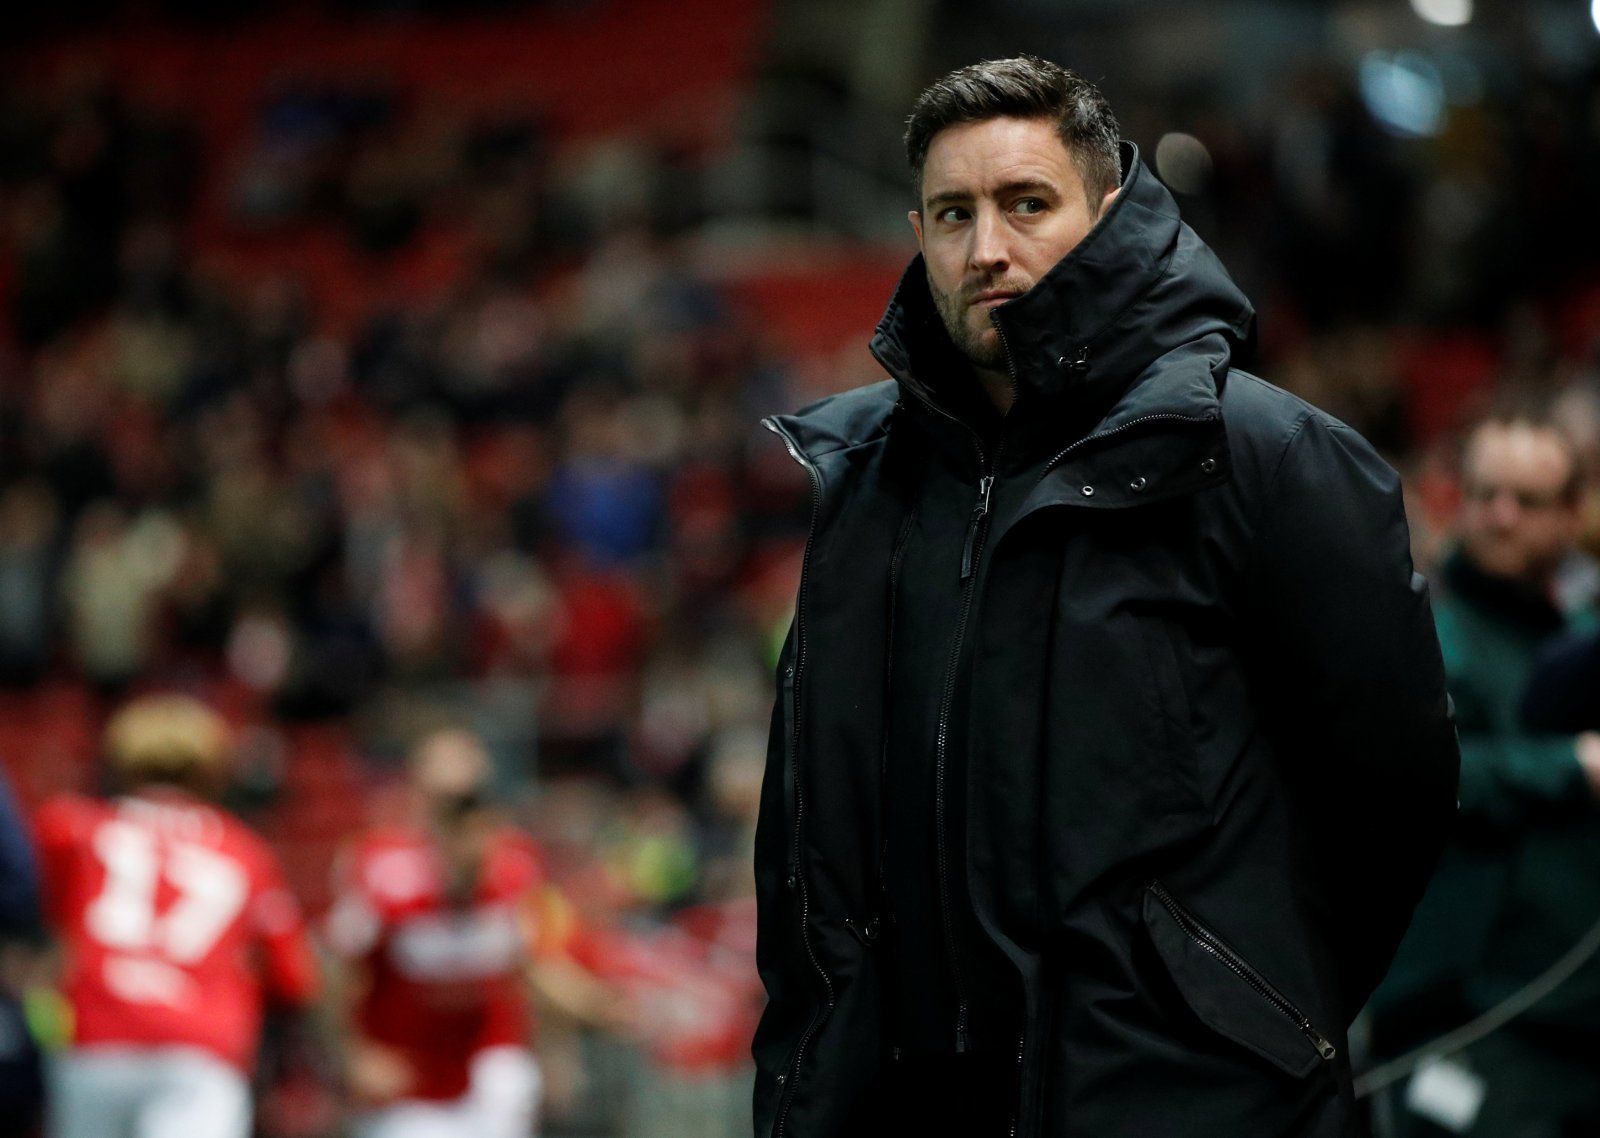 Introducing: Bristol City as dark horses for promotion